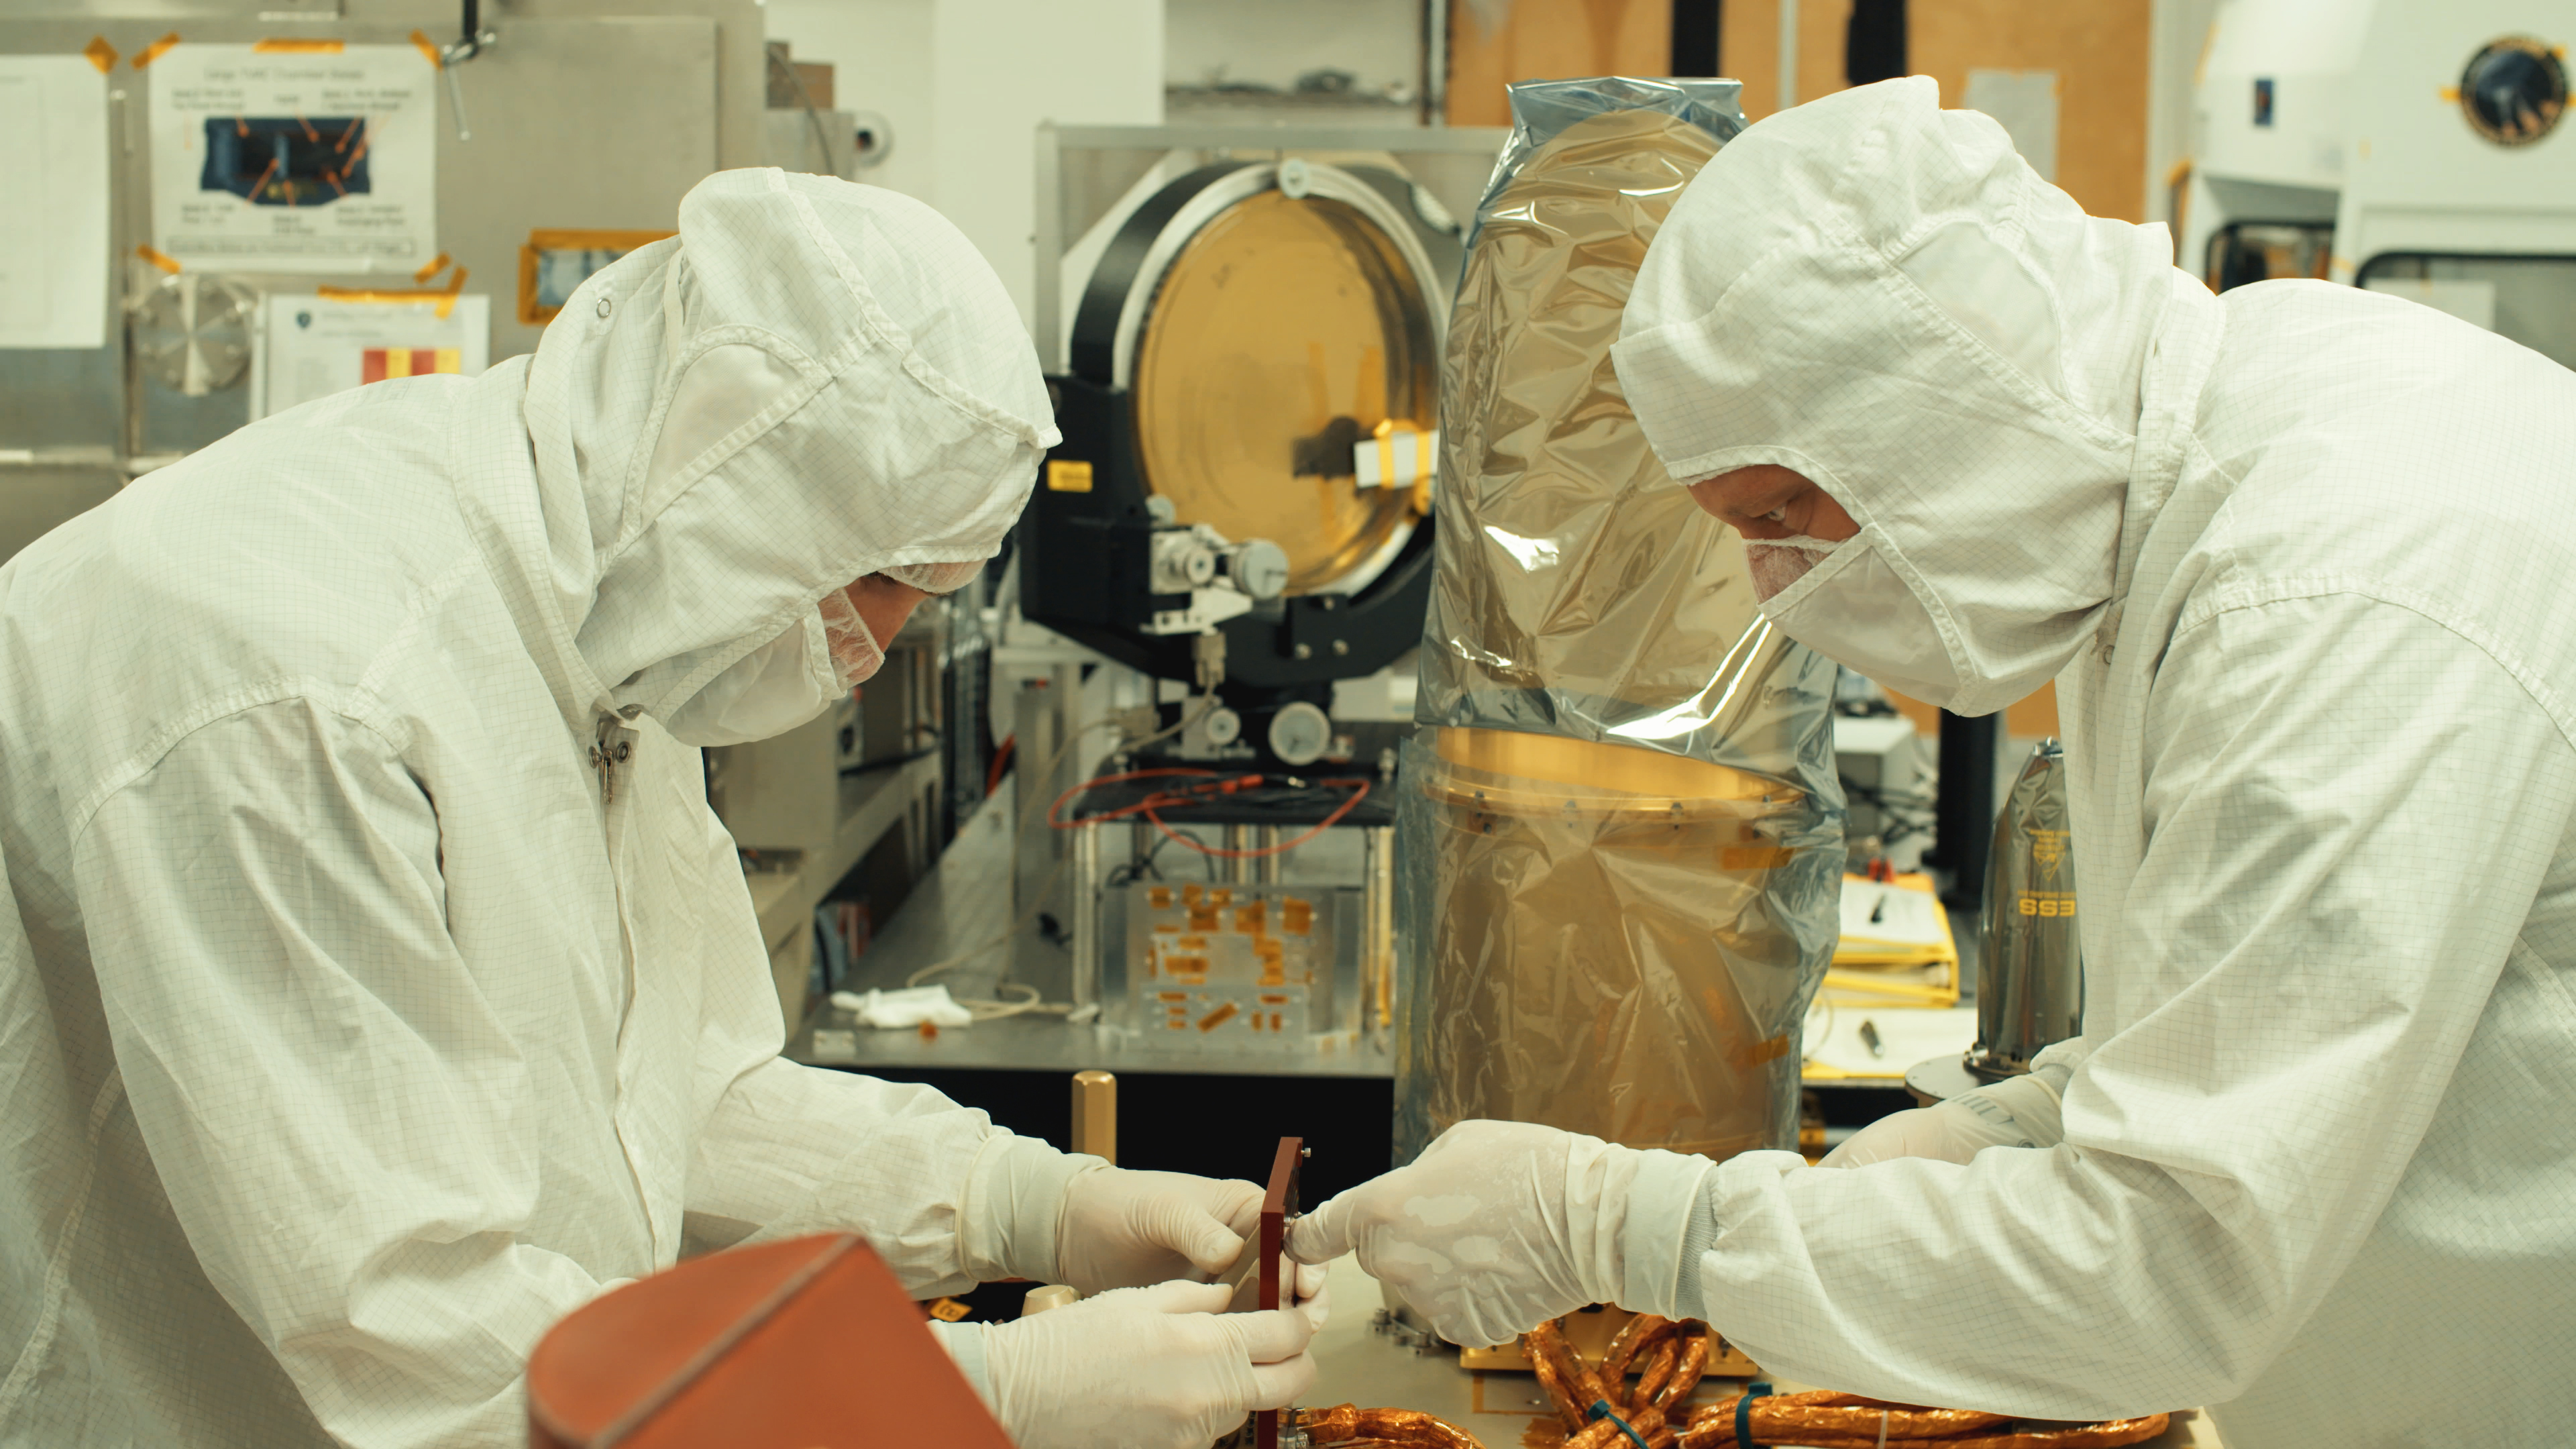 Mechanical engineer Mitch Beiser (left) and senior staff engineer William Verts prepare the OCAMS instrument for its final round of testing at UA's OSIRIS-REx facility. The camera instrument will be delivered to Lockheed Martin in Denver for installation onto NASA's OSIRIS-REx spacecraft, which is scheduled to launch into space in September 2016. Credit: University of Arizona/Symeon Platts